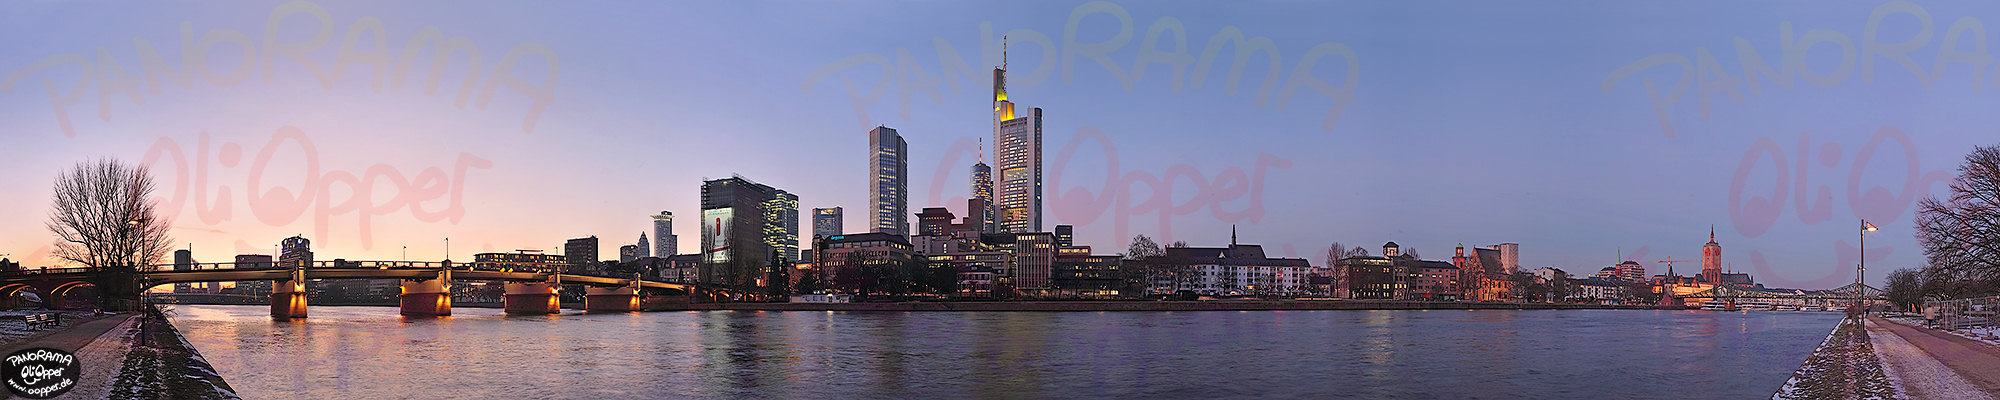 Frankfurt am Main - Winterliches Mainufer nach Sonnenuntergang - p111 - (c) by Oliver Opper